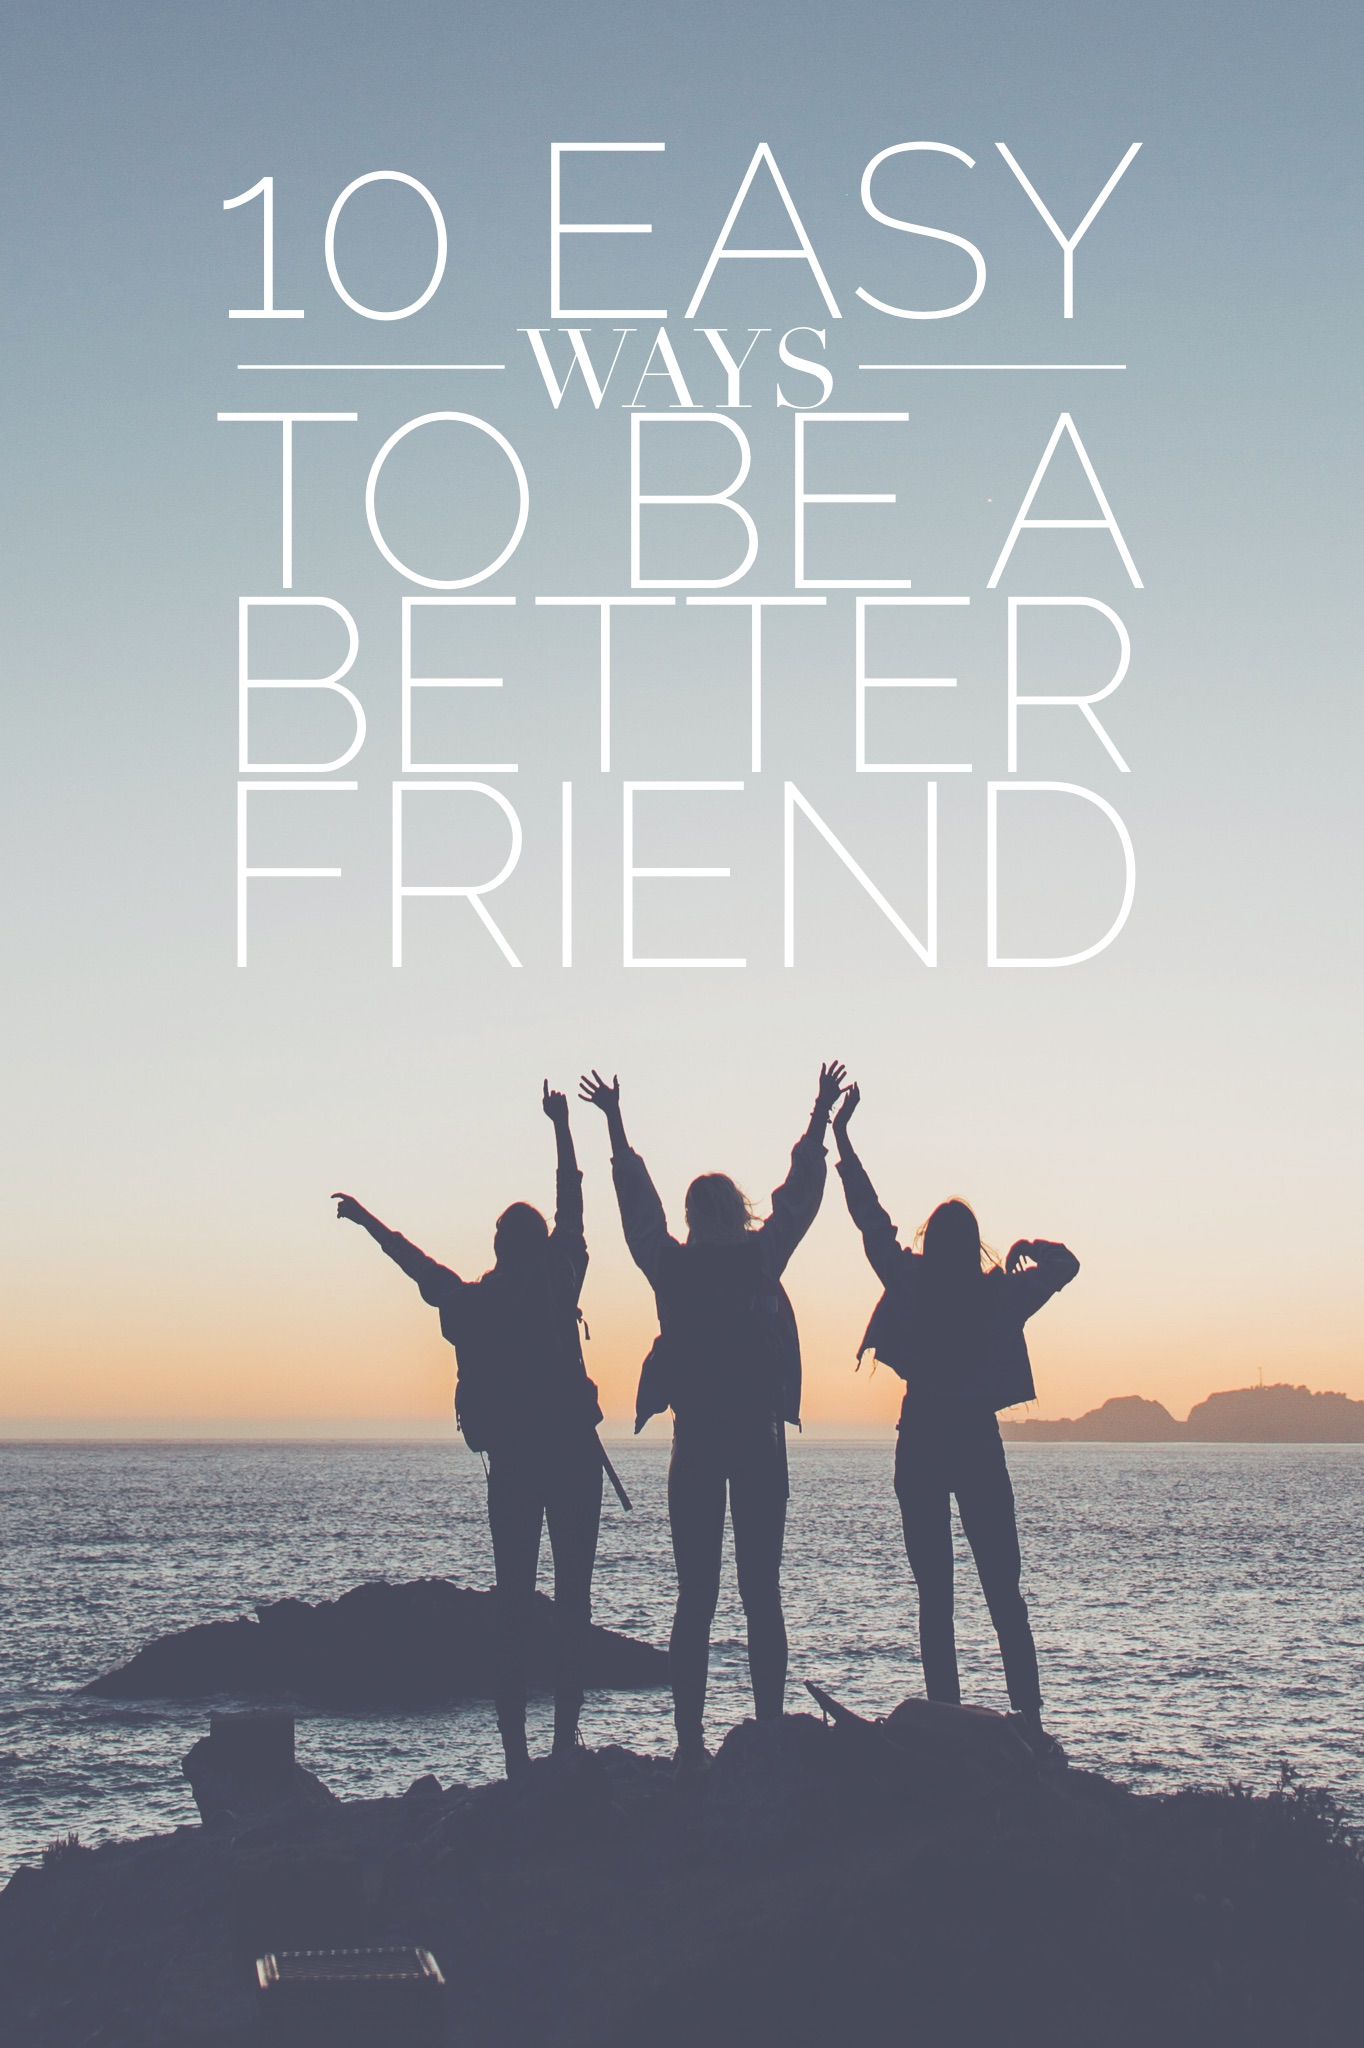 10 Easy Ways to Be a Better Friend